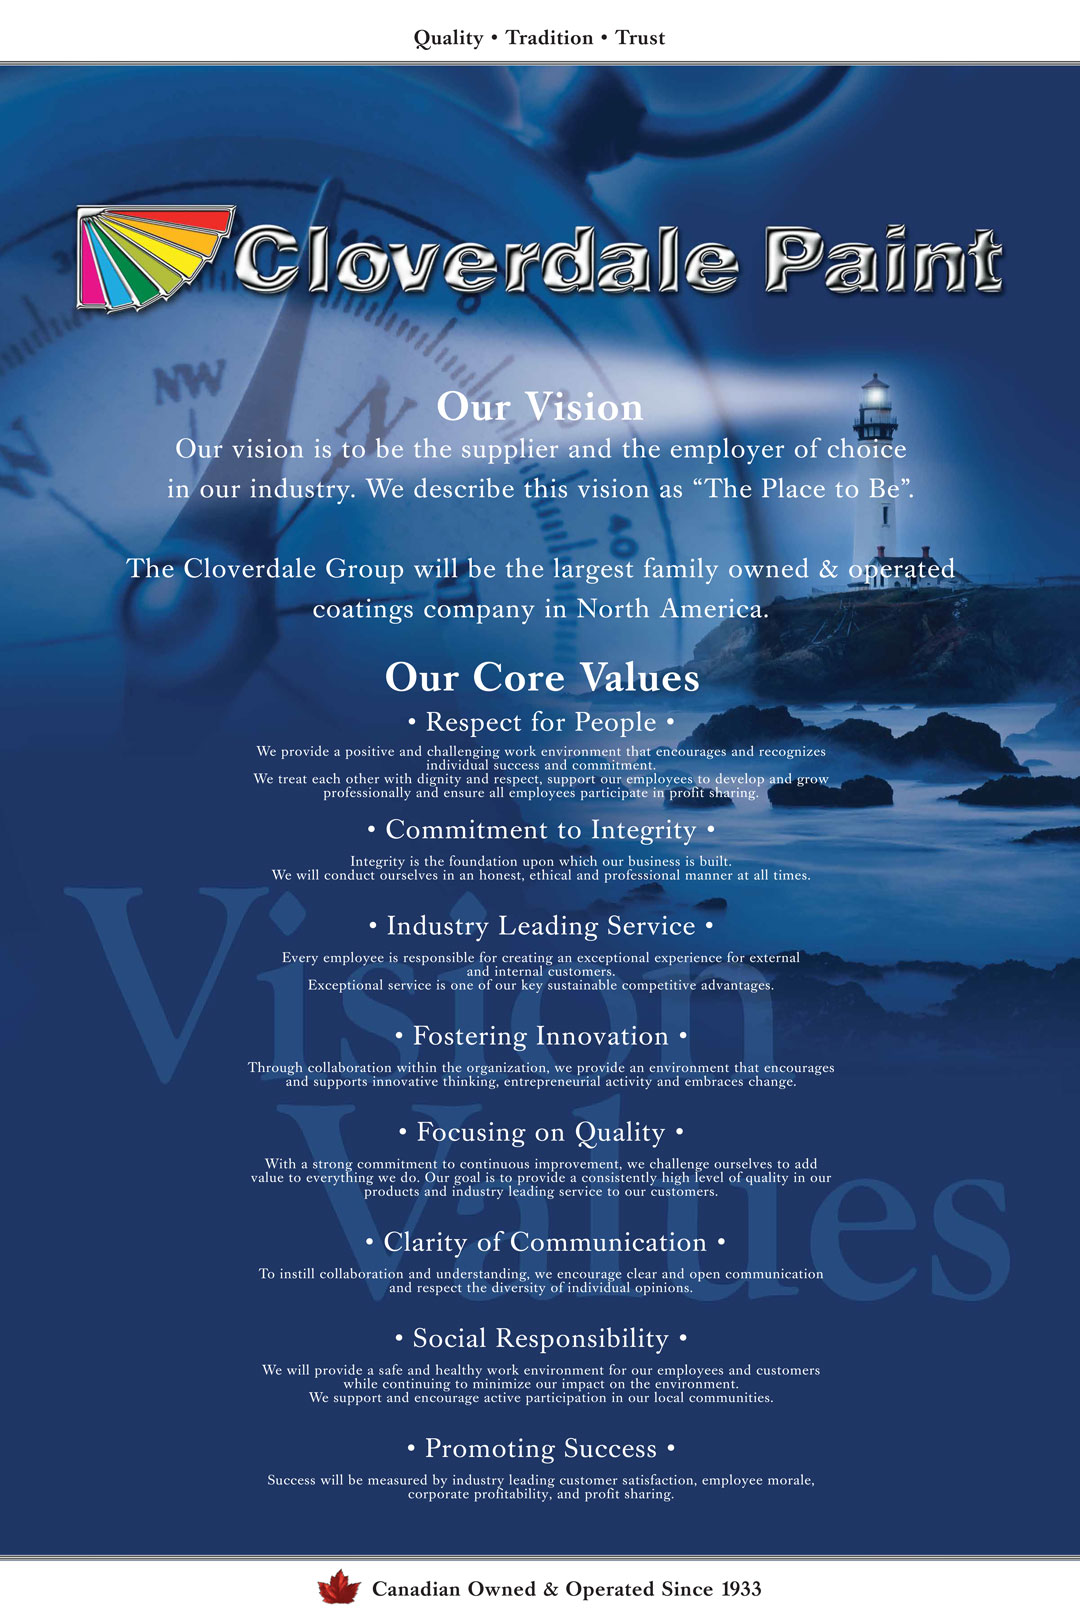 Our Vision & Our Core Values